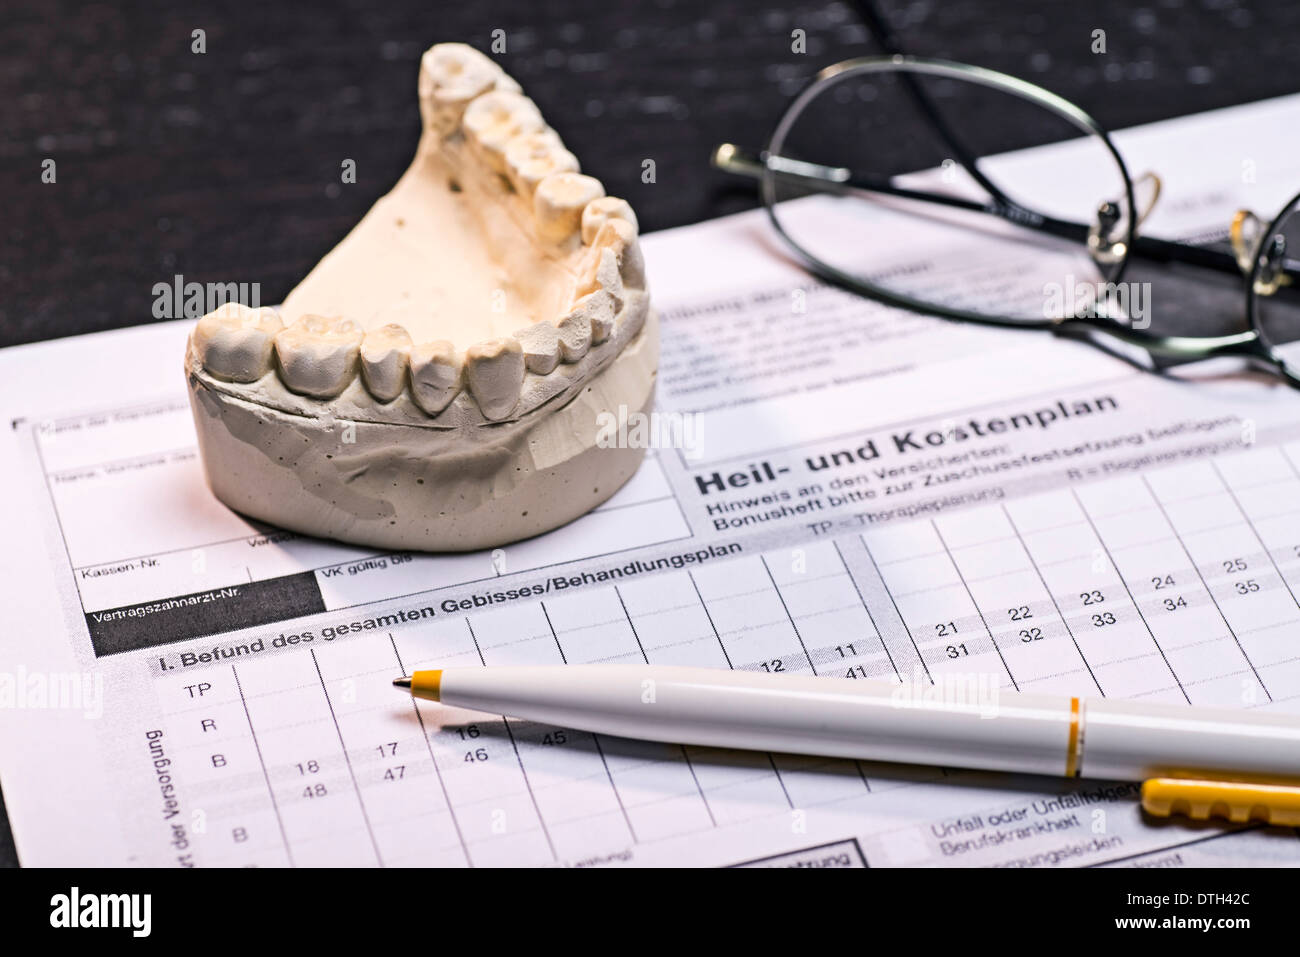 Treatment and cost plan for dental prostheses. - Stock Image